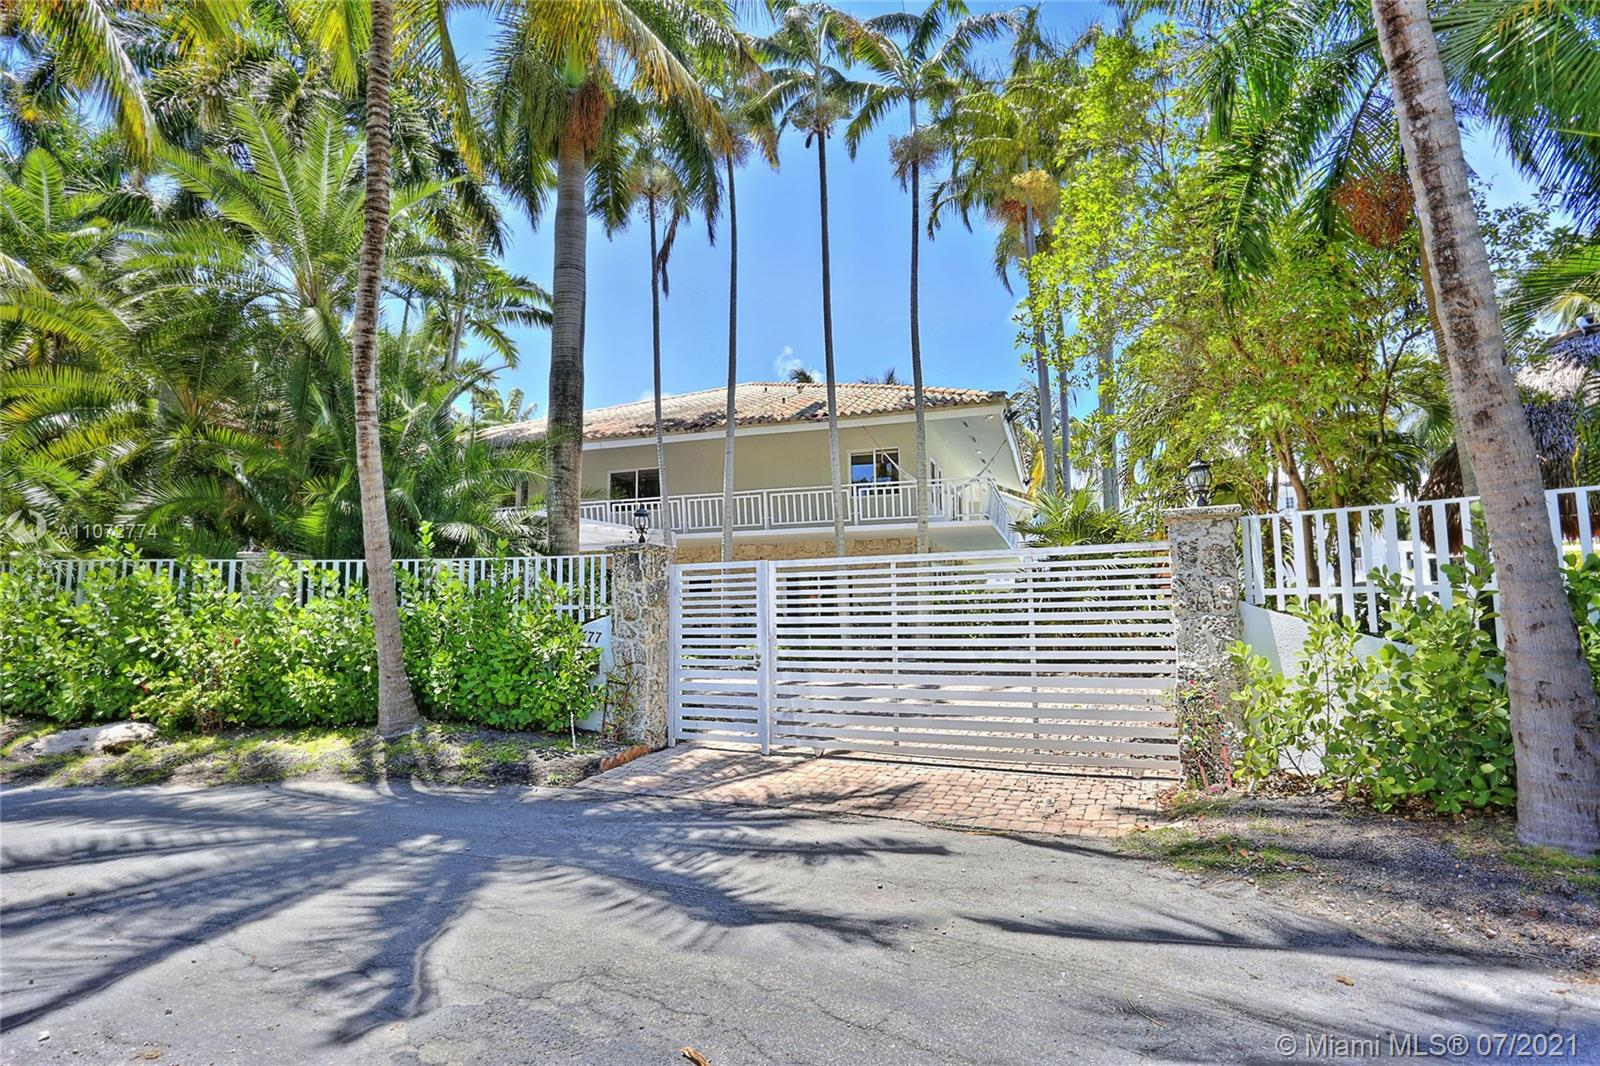 This stunning + remodeled, modern Key West-style home sits on a 19,500-square-foot waterfront lot in Coconut Grove's private + gated community, Entrada Estates. This spectacular home features 5 bedrooms each with en-suite bathroom + private balcony, a 1,000-sq-ft master suite, a fabulous open floor plan, exquisite gourmet kitchen, 2nd floor family room, covered parking for 5 cars + a tropical pool. The property has a 150-ft seawall + is only one house from Biscayne Bay + direct ocean access. The community offers tennis courts + 24-hour security. Walk to Coconut Grove restaurants, shops, great schools + more. Miami Dade Tax Rolls show 5,037 adjusted sq ft.